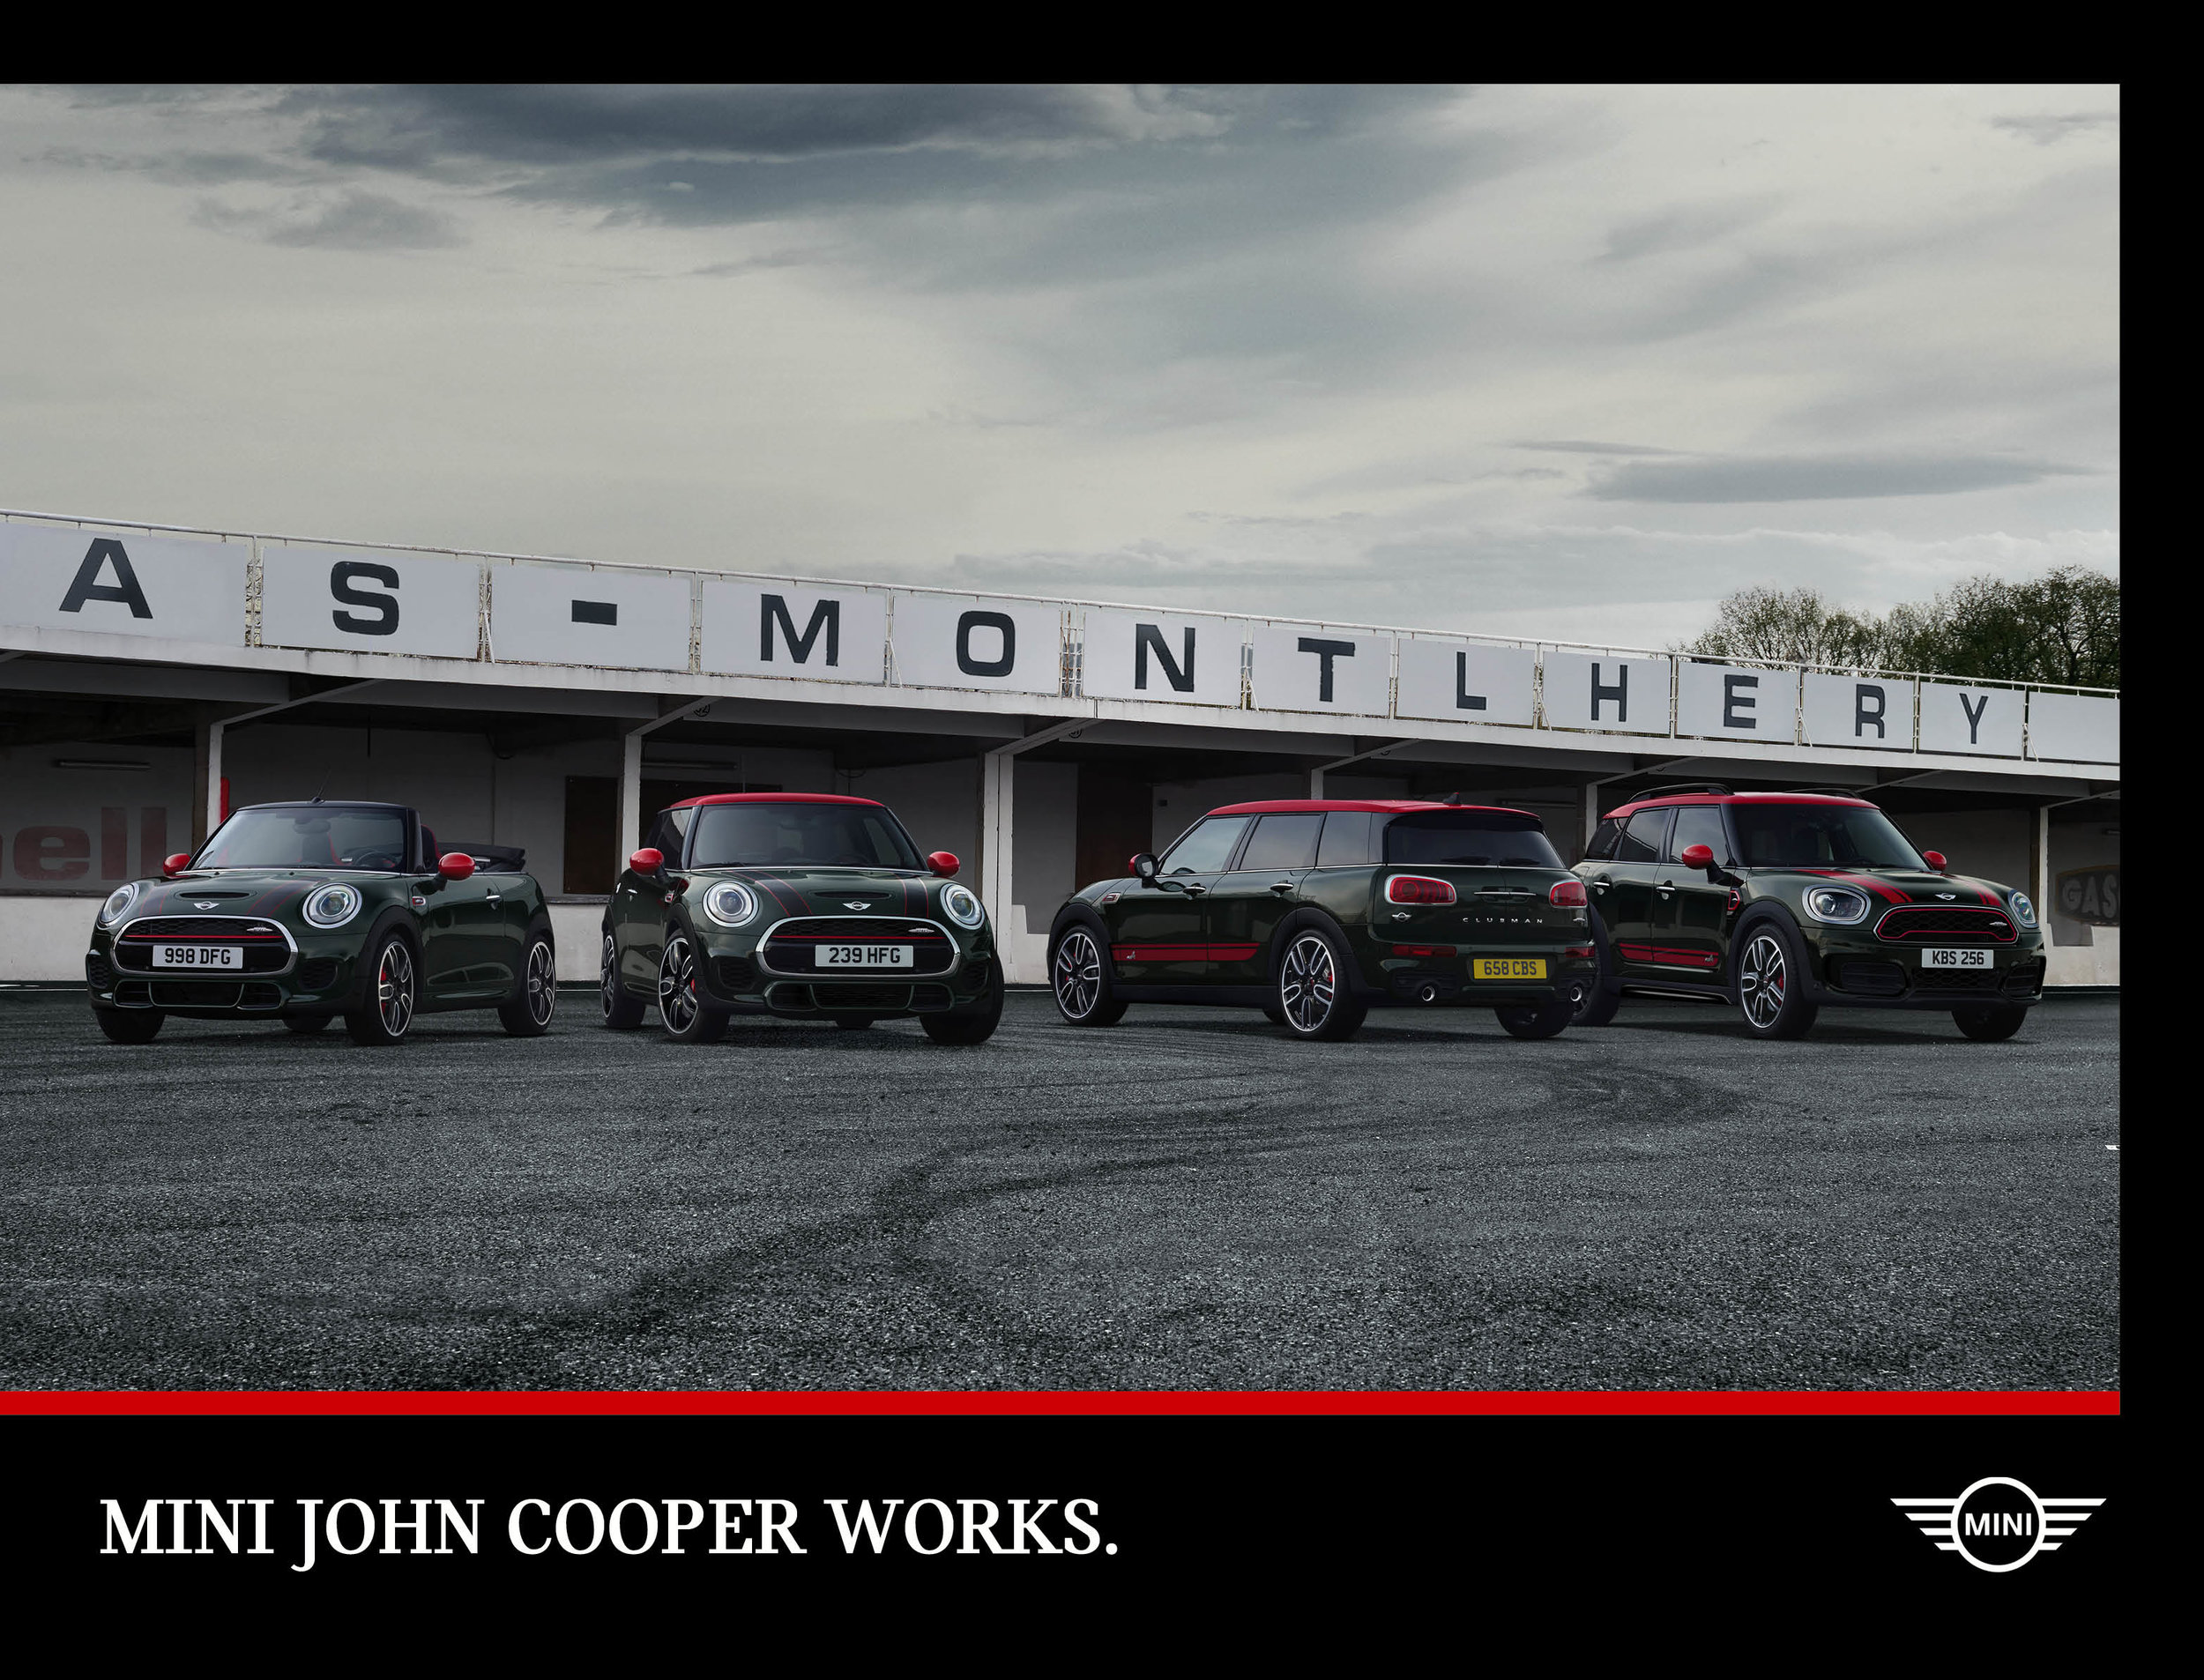 On sale now!FREEMINI JOHN COOPER WORKS BOOKLET WITH THIS ISSUE! -